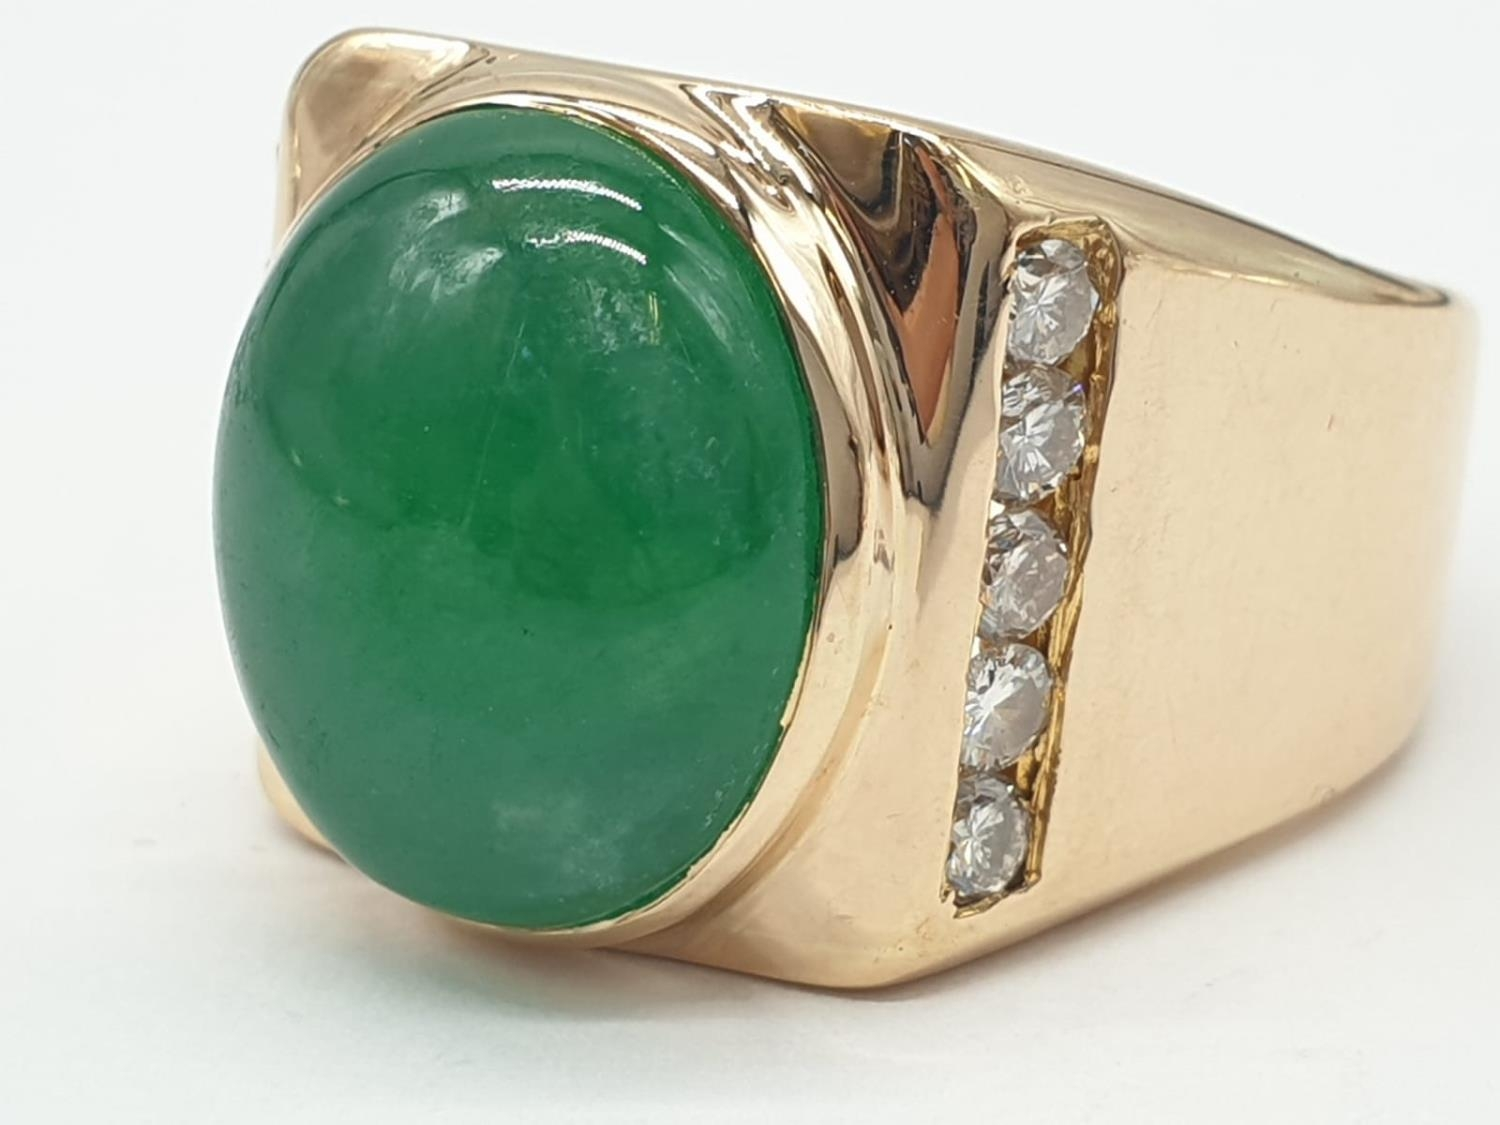 18ct Gold ring with natural jade stone and diamond shoulders. 16.2g total weight and size R.